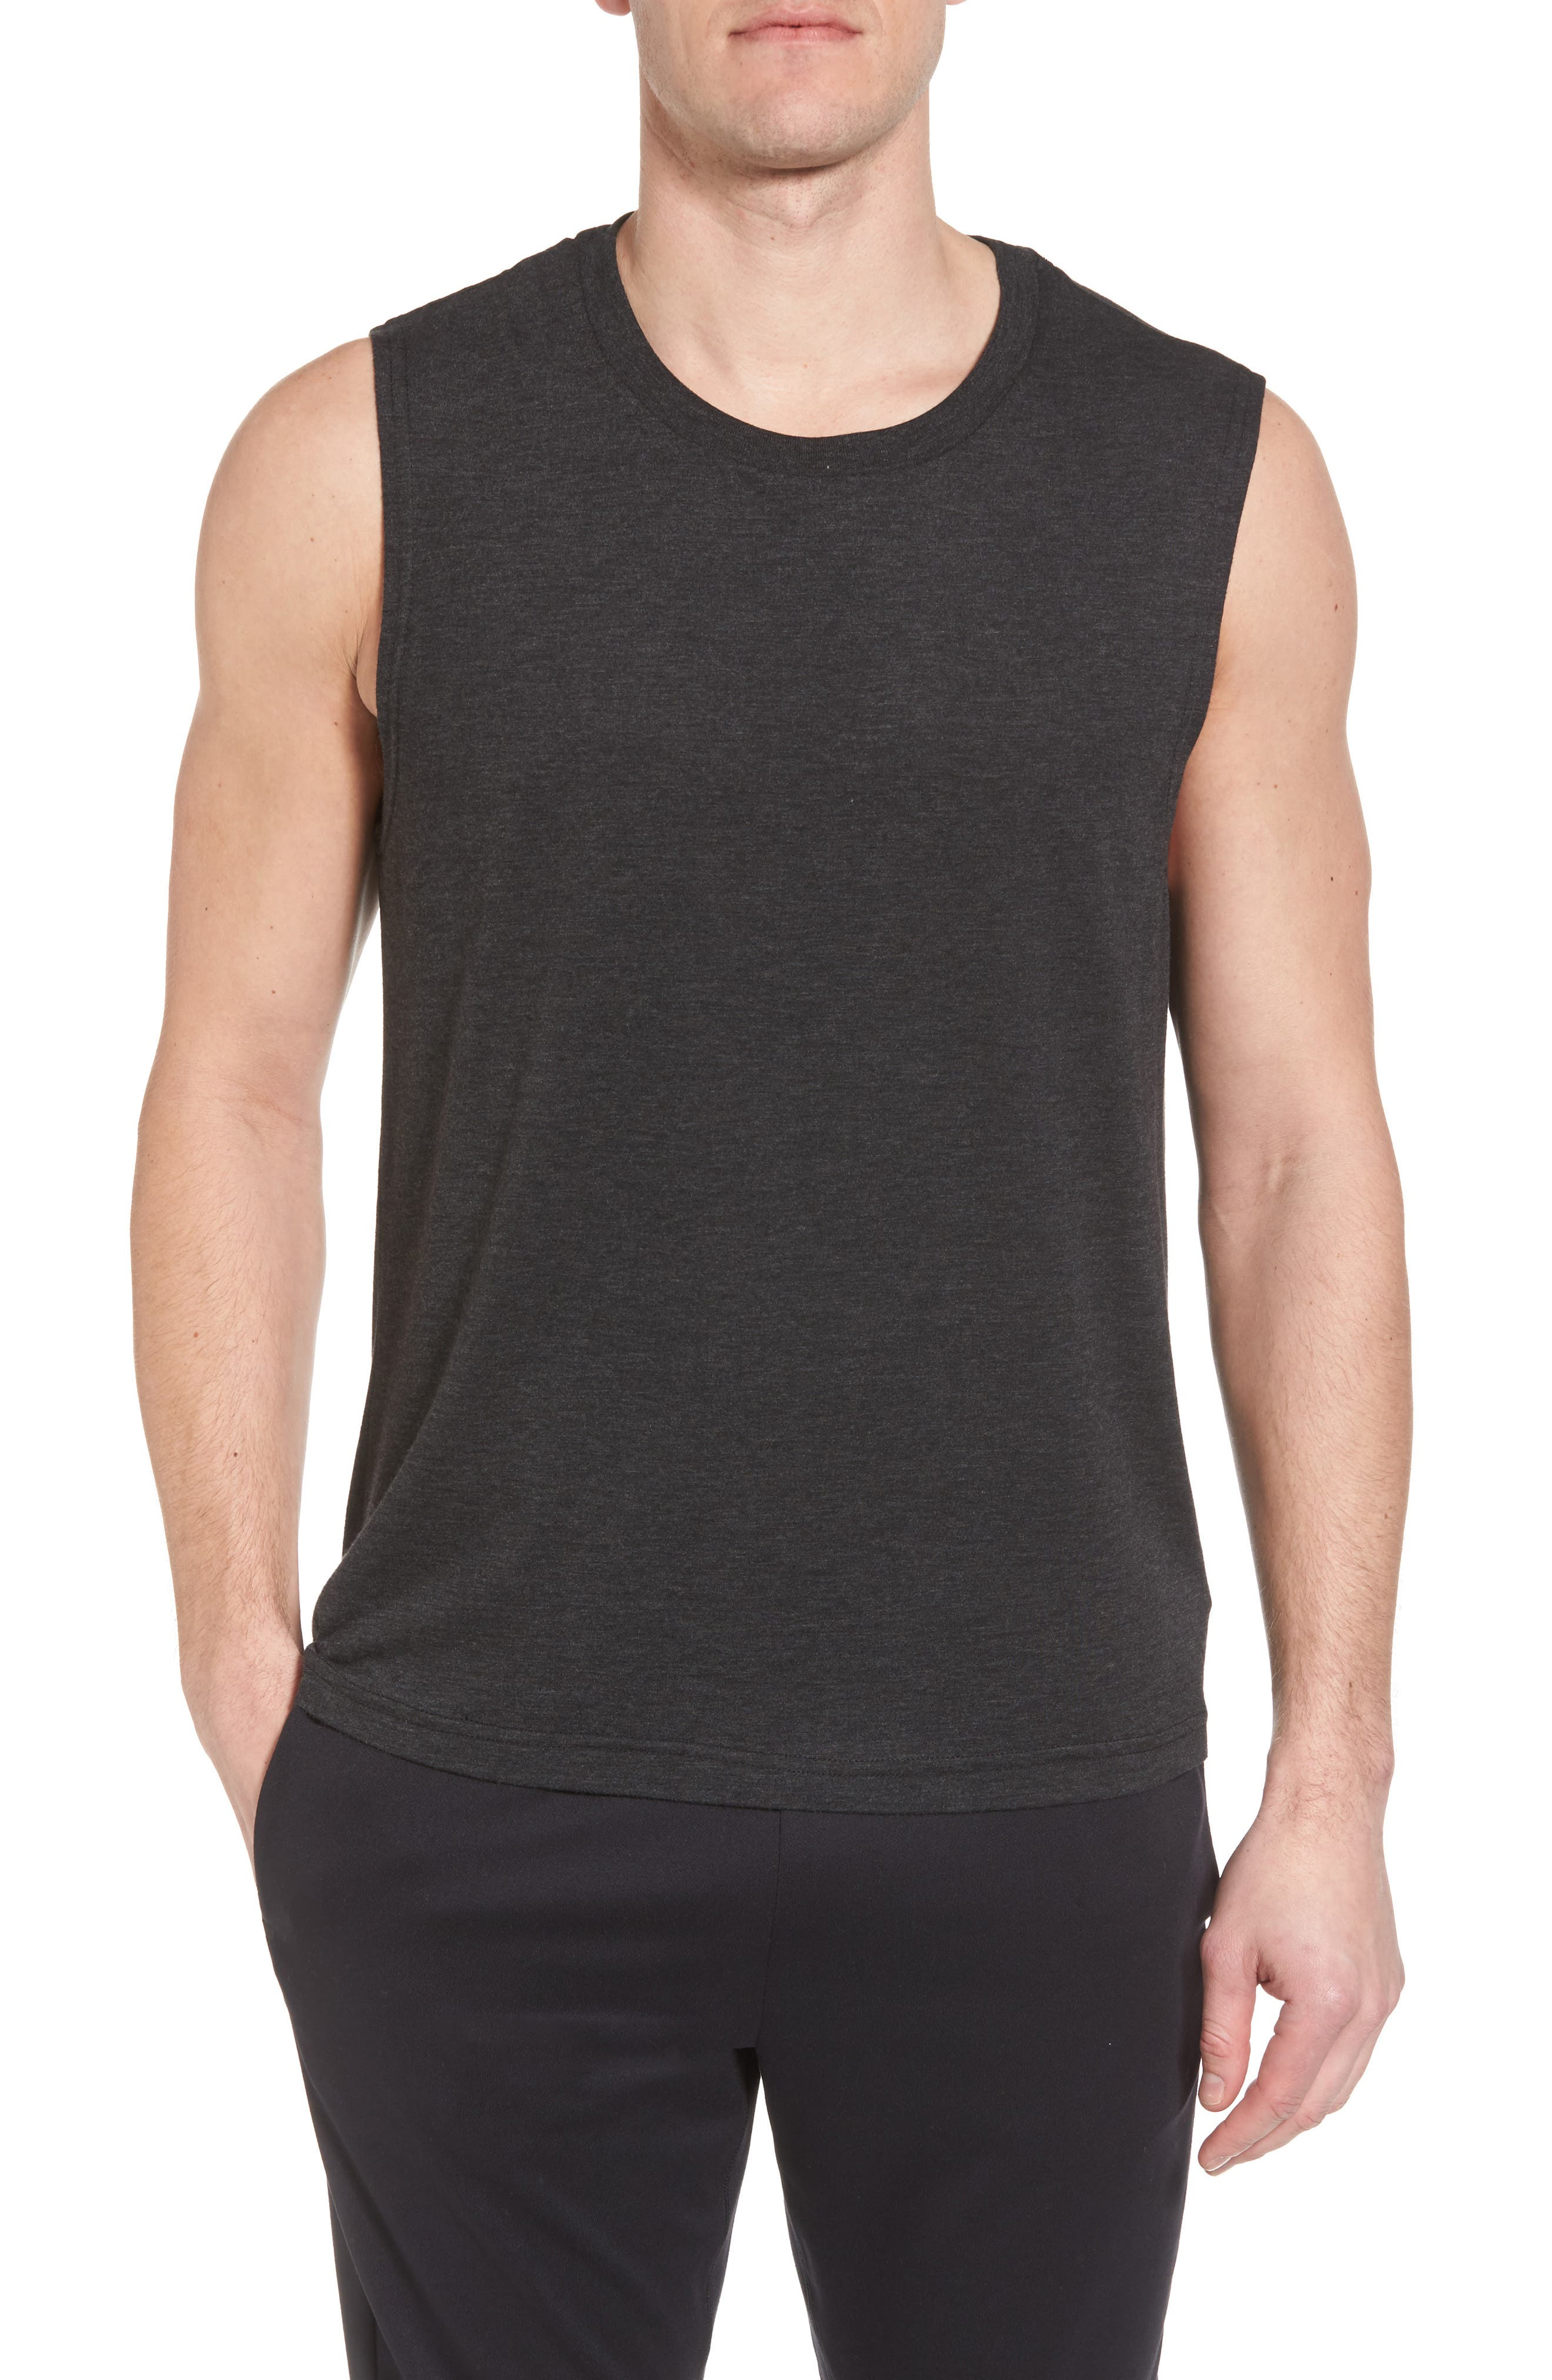 466bfd72eb4a2 Men s Tank Tops